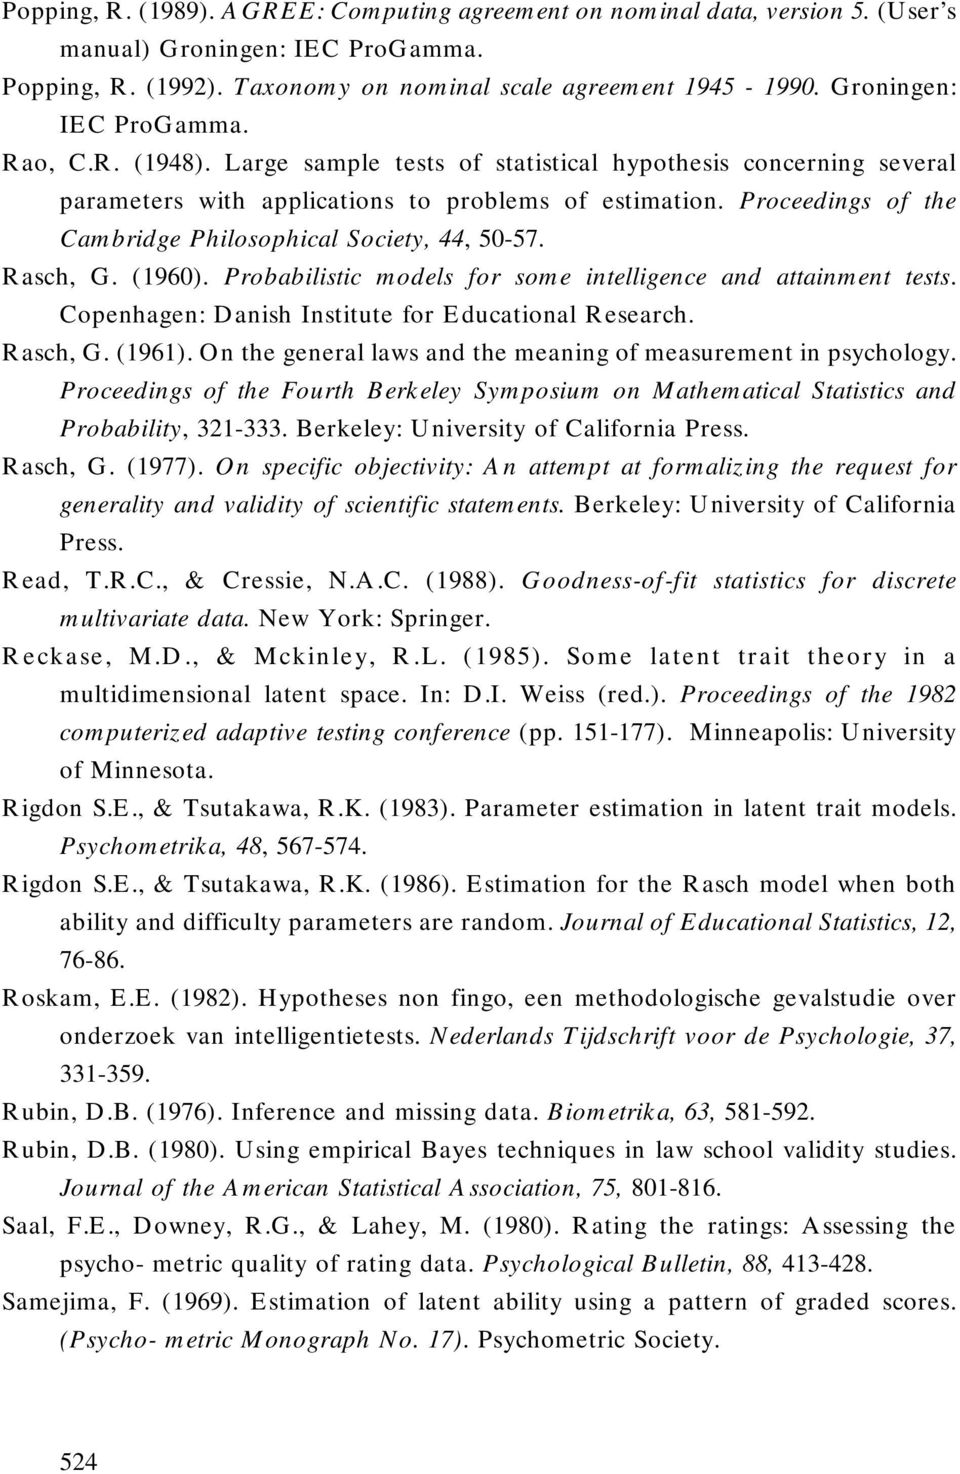 Proceedings of the Cambridge Philosophical Society, 44, 50-57. Rasch, G. (1960). Probabilistic models for some intelligence and attainment tests. Copenhagen: Danish Institute for Educational Research.